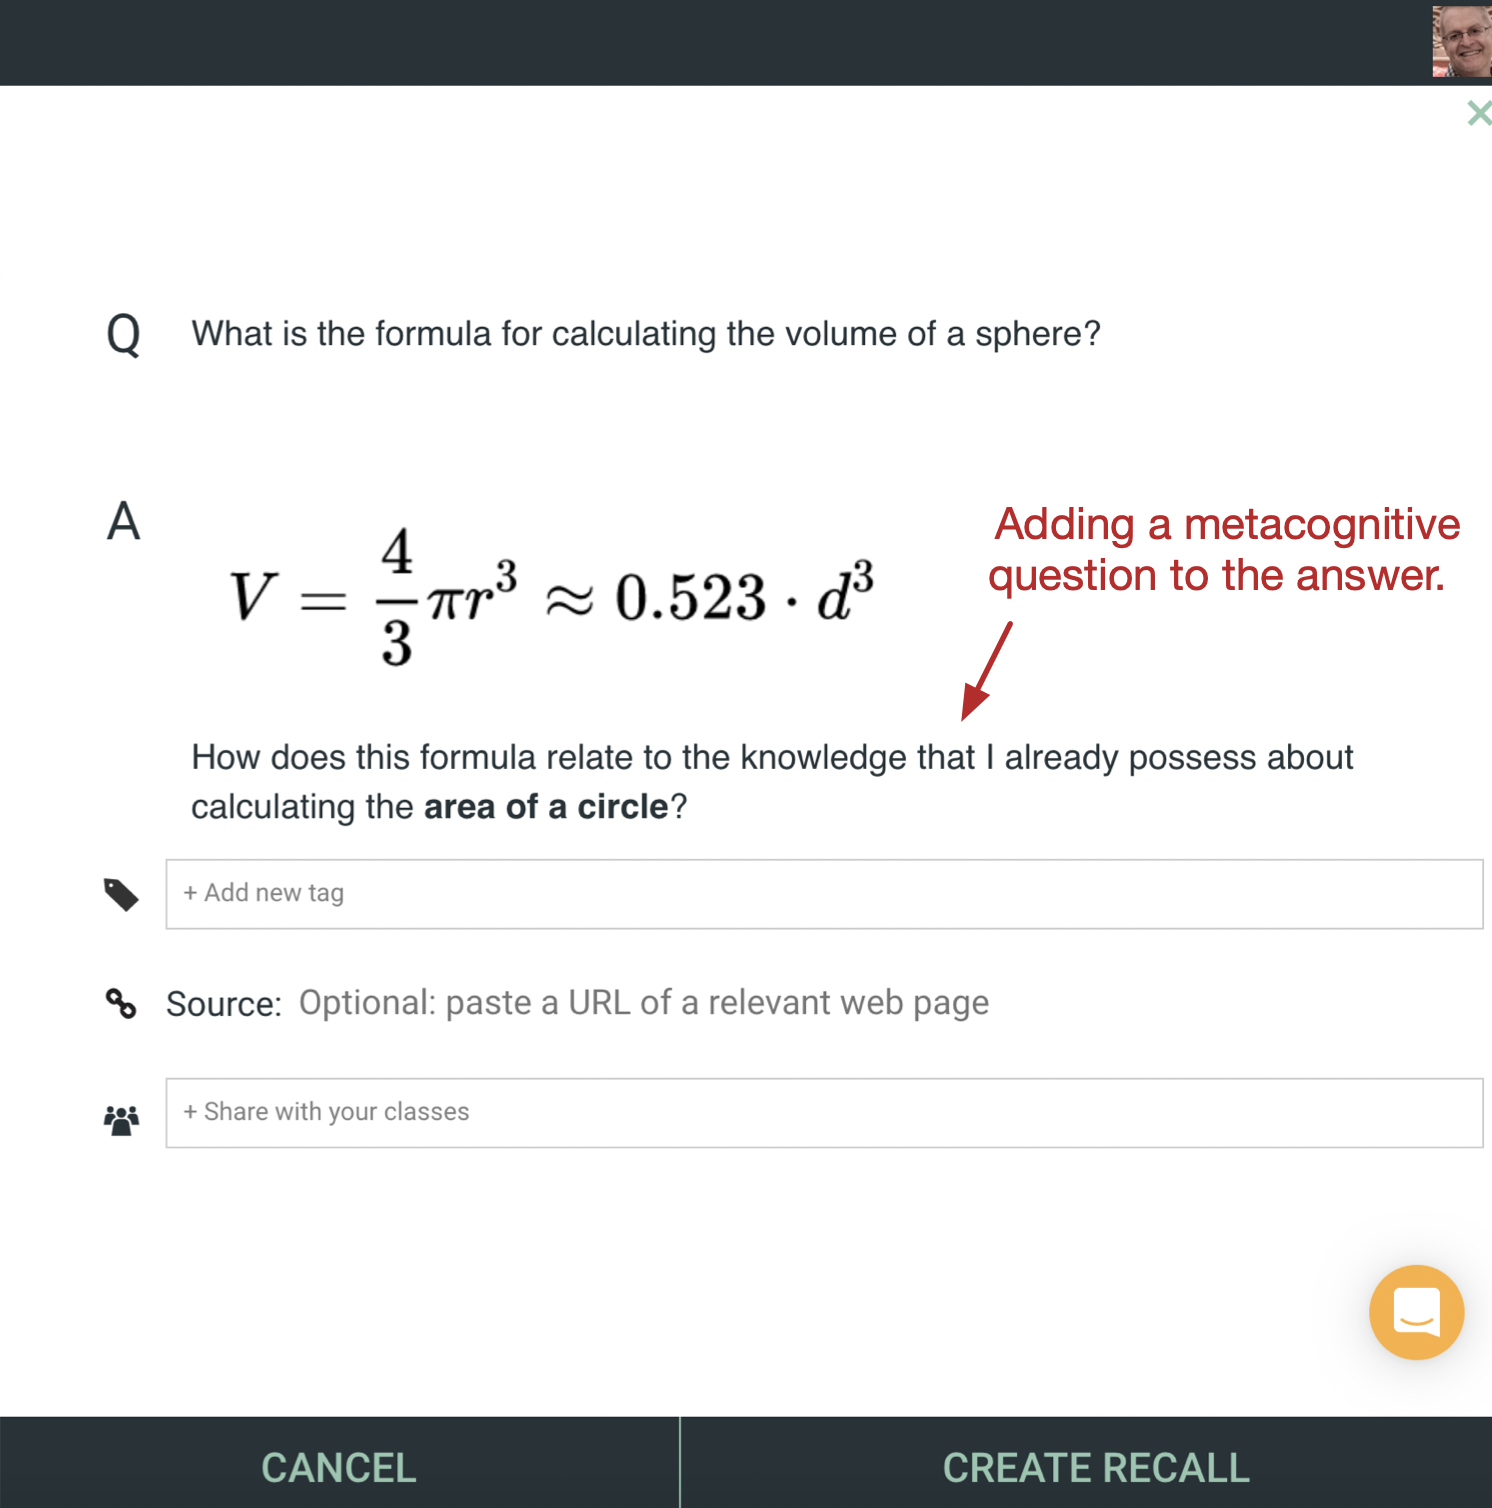 Image from the iDoRecall.com user interface depicting the use of a metacognitive question in the answer of a flashcard,